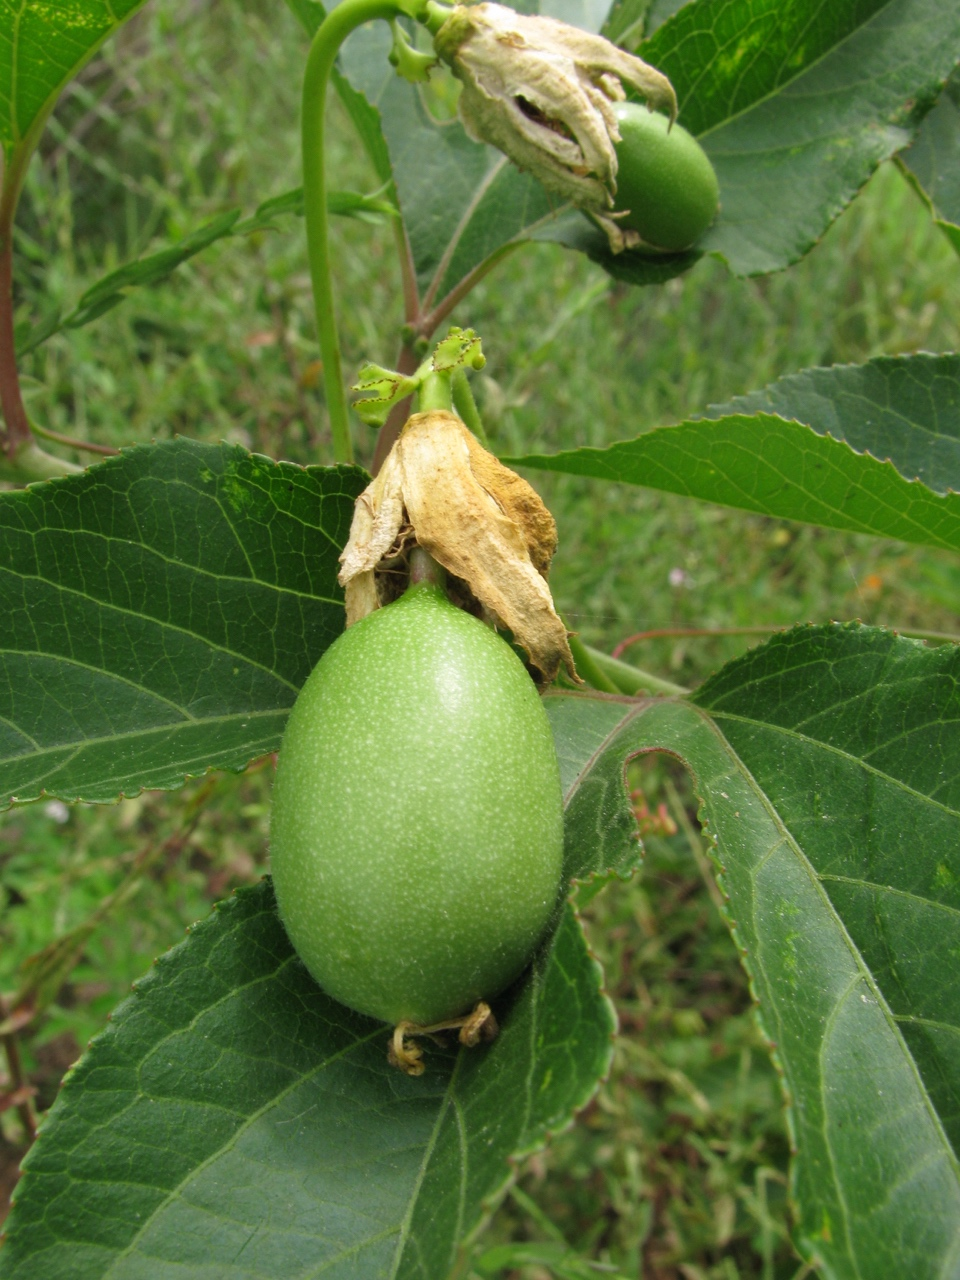 The Scientific Name is Passiflora incarnata. You will likely hear them called Purple Passionflower, Passion-vine, Maypops. This picture shows the Developing fruit (a very large berry) of Passiflora incarnata